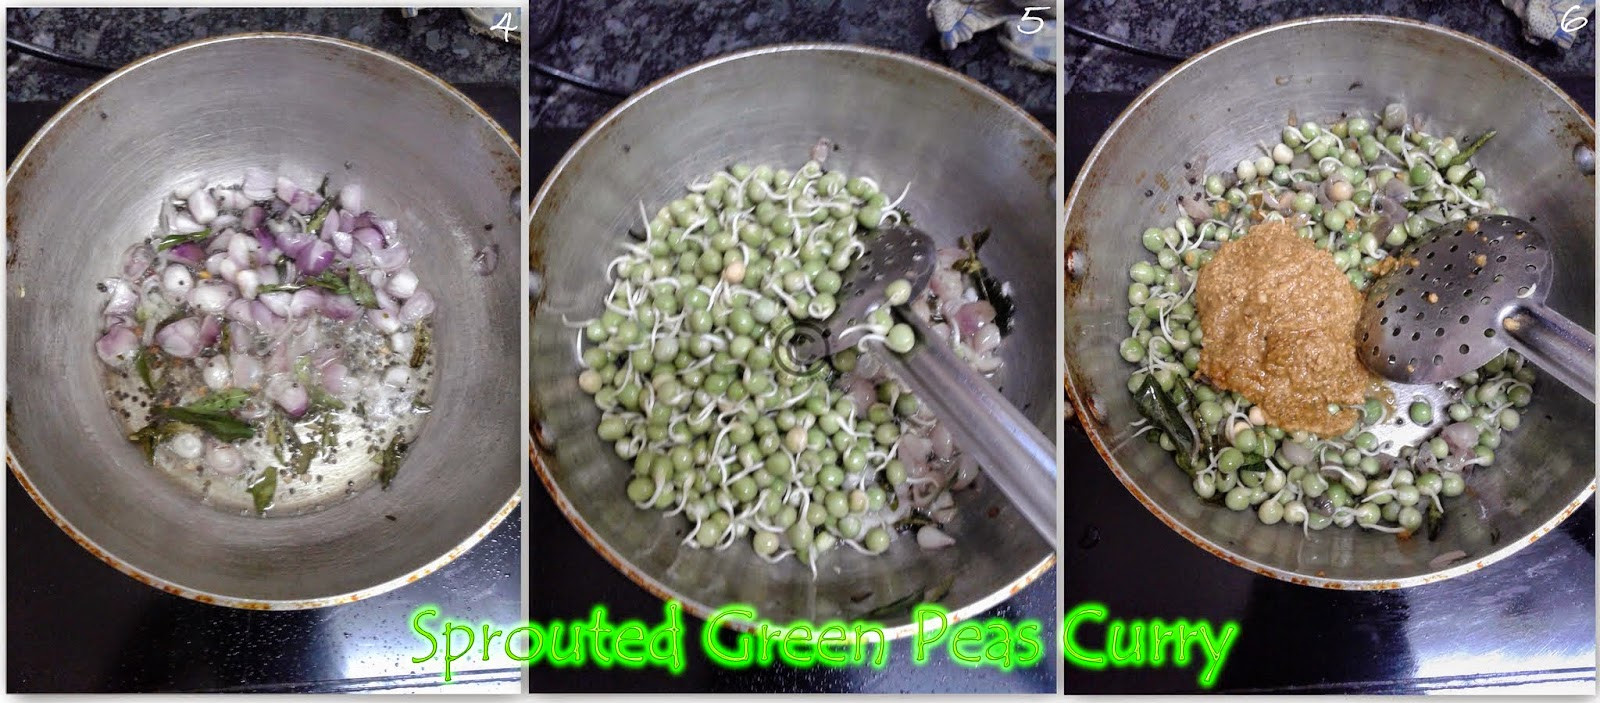 sprouted-green-peas